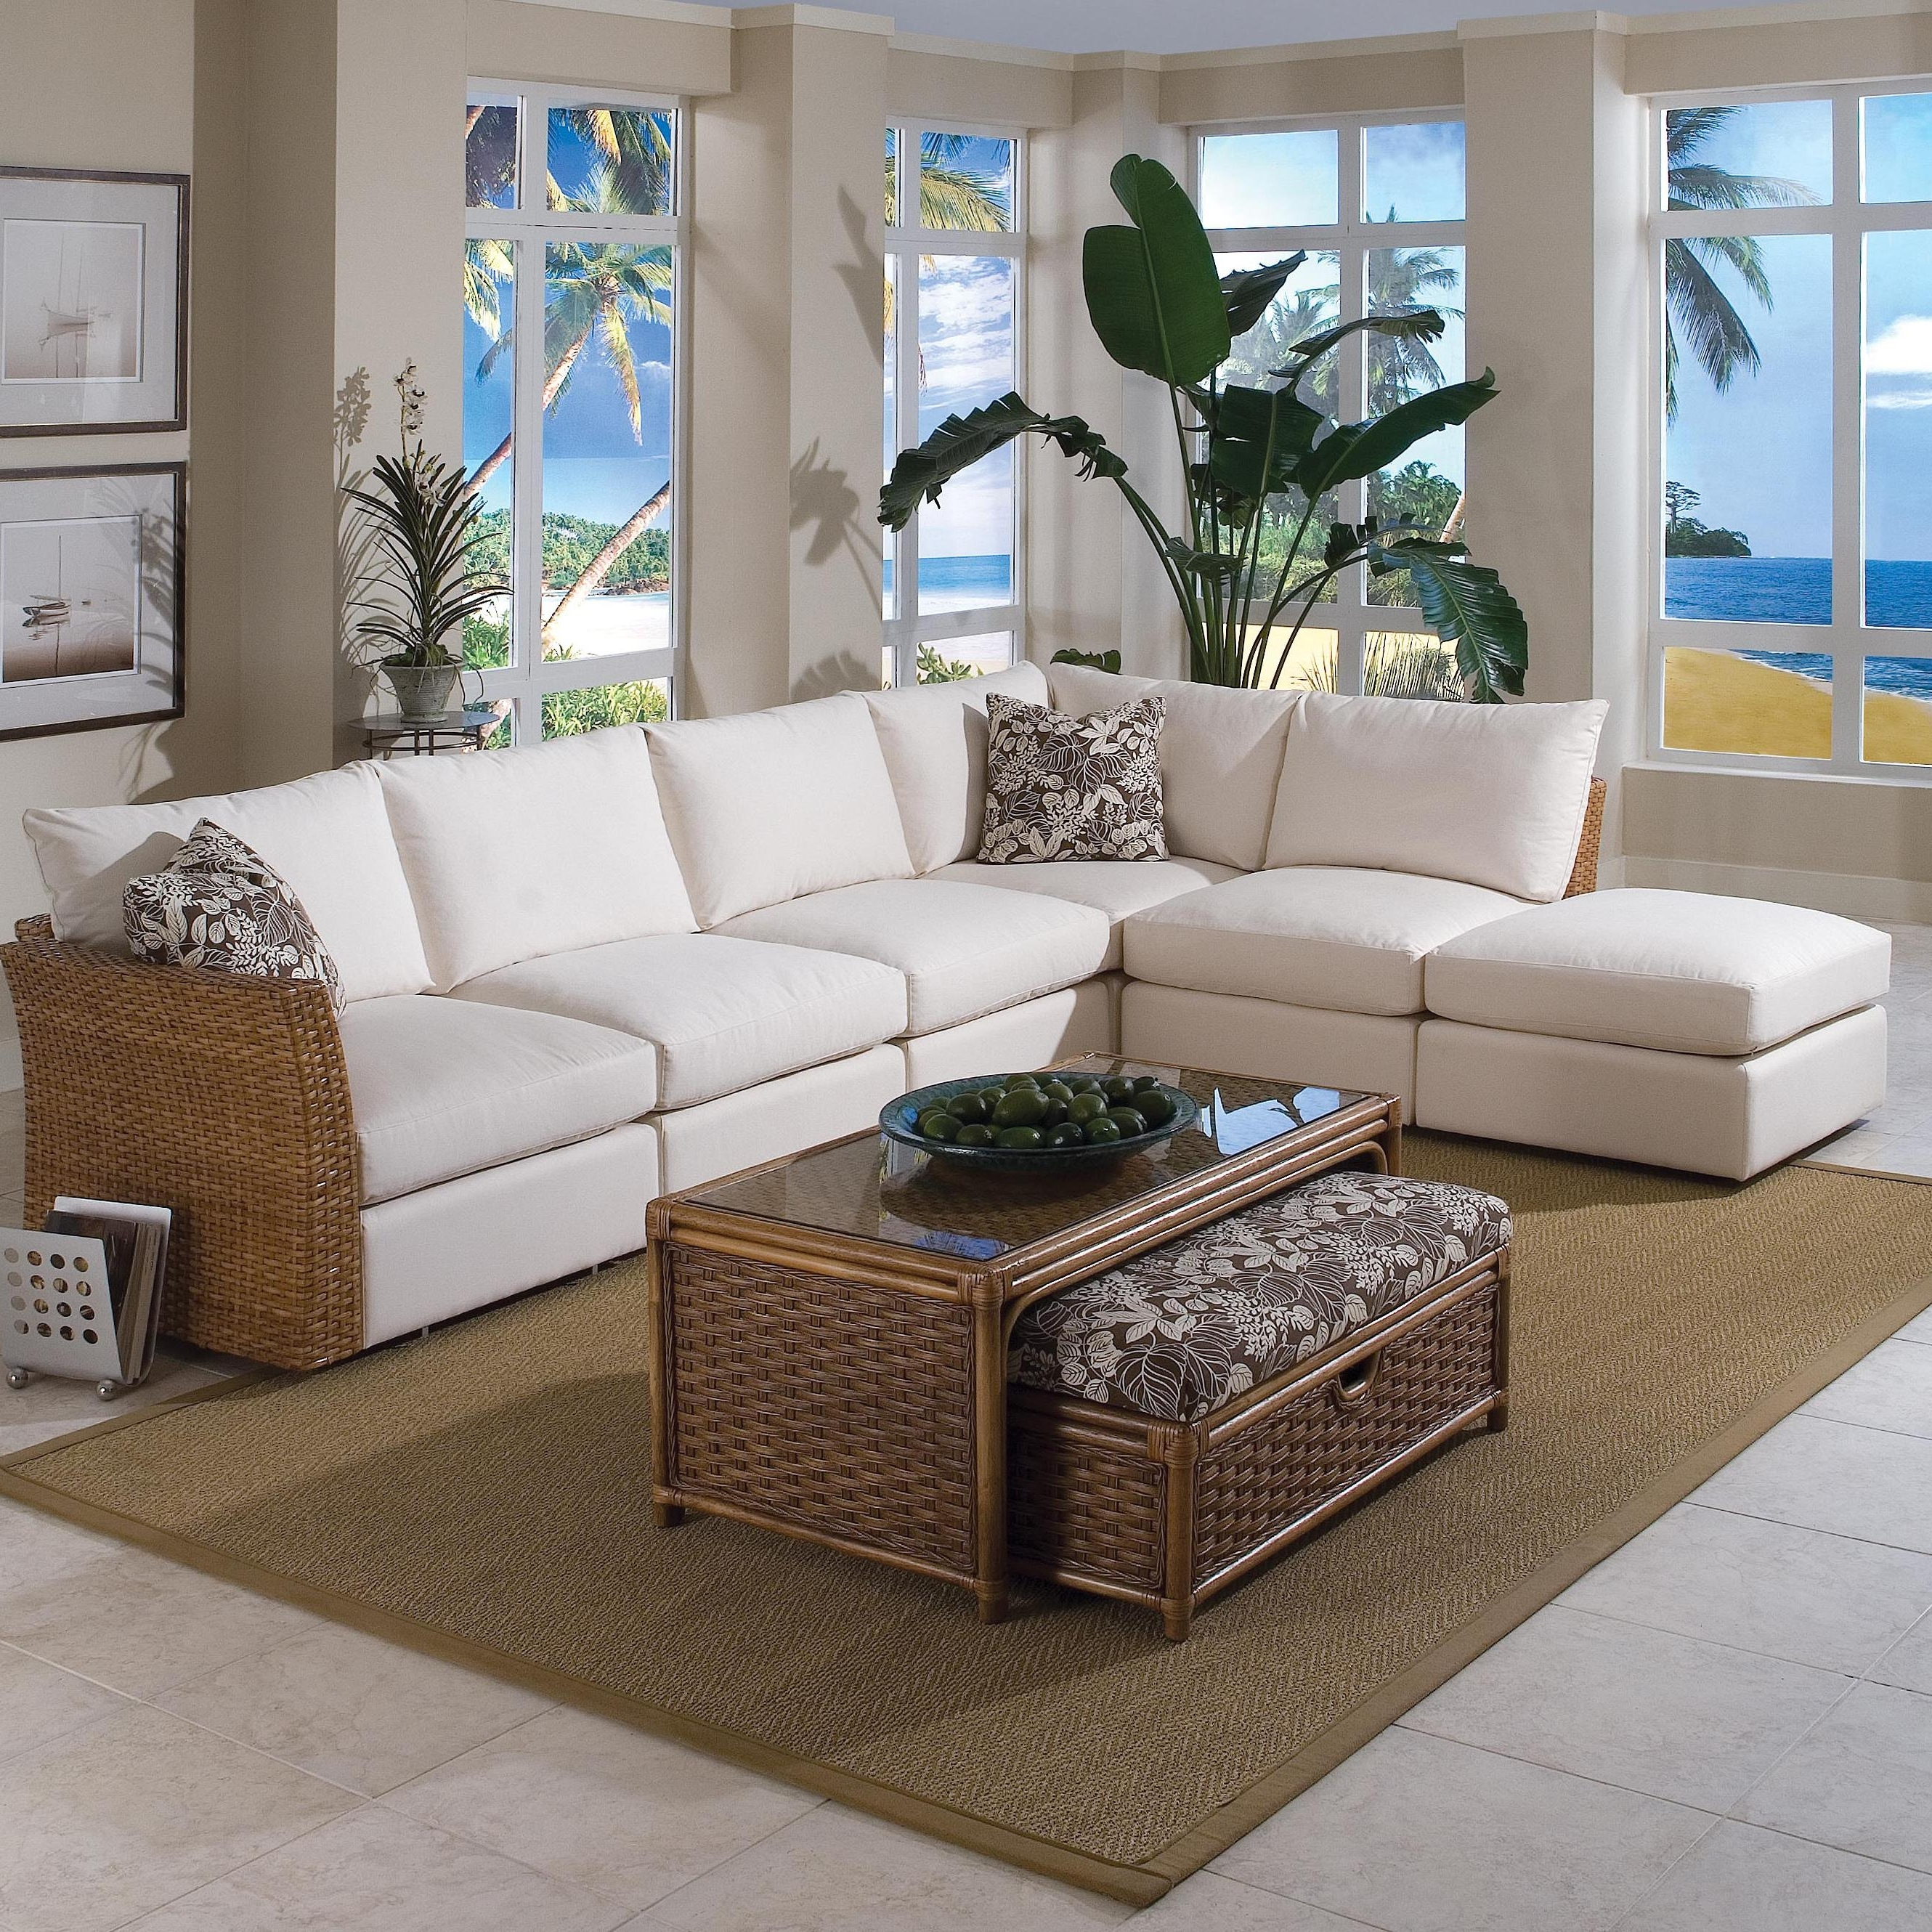 Best And Newest Sectional Sofas In Greenville Sc Regarding Braxton Culler Grand Water Point Tropical Sectional Sofa With Two (View 3 of 15)